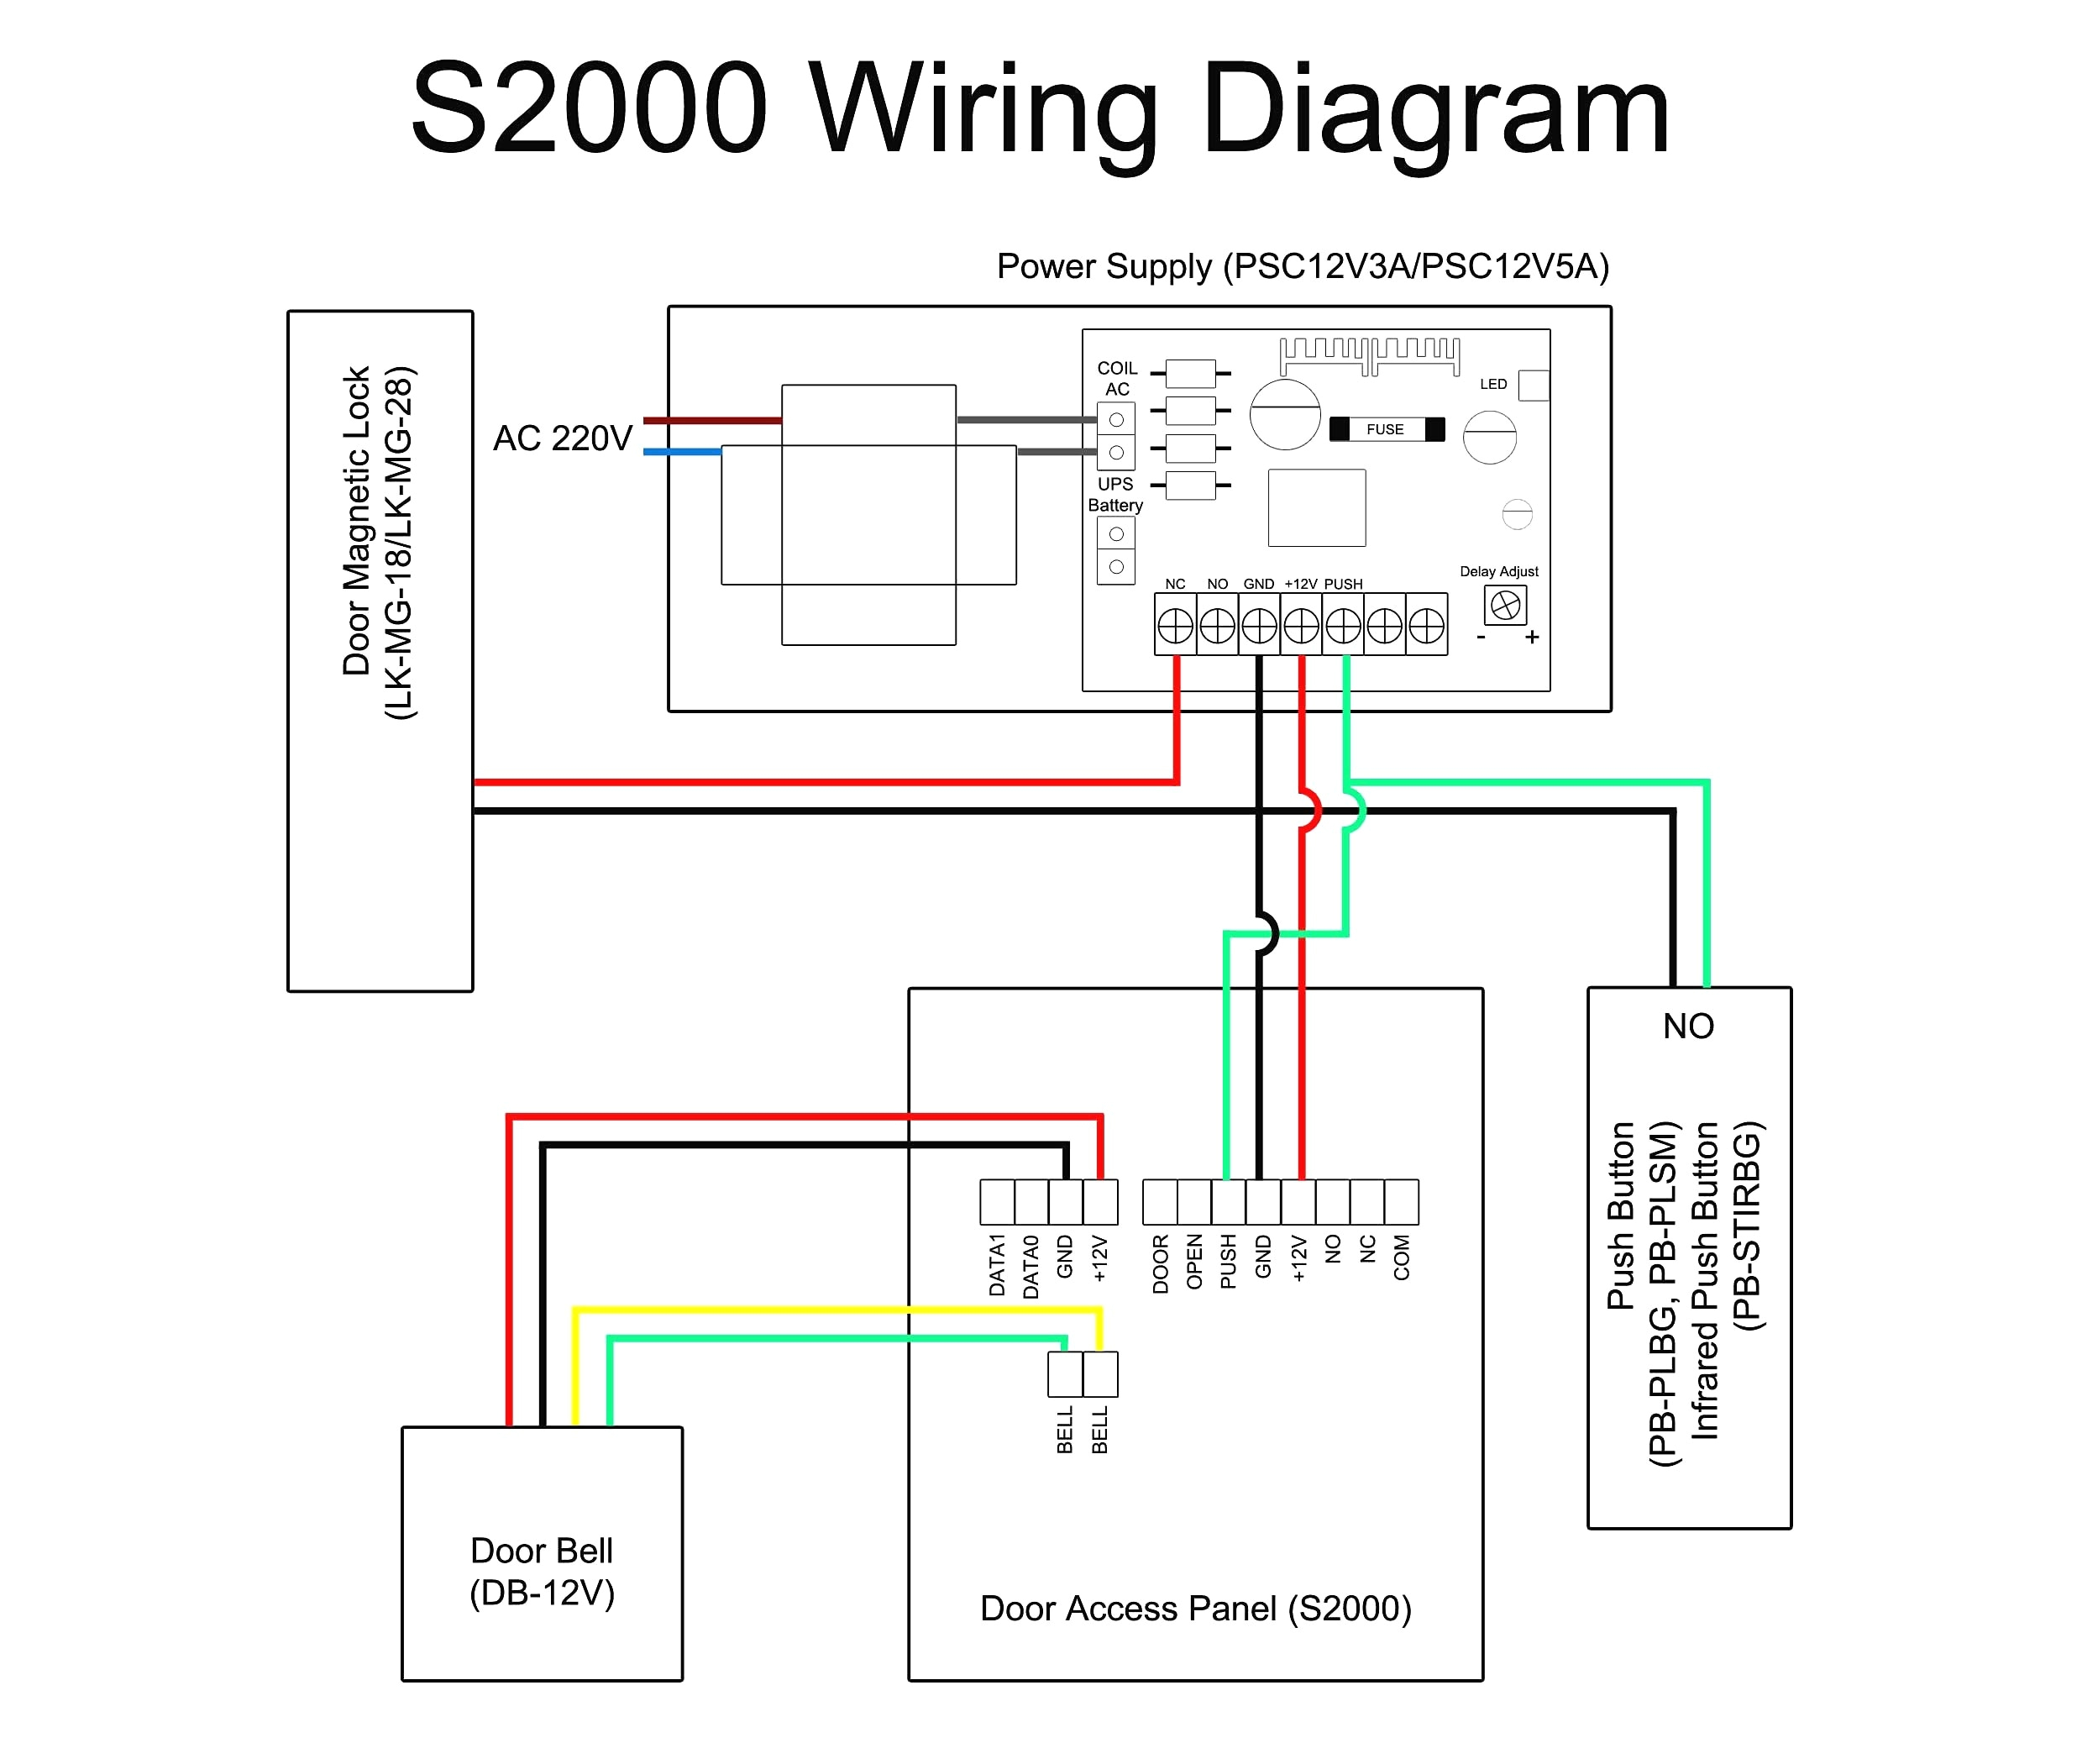 Bunker Hill Security Camera 69654 Wiring Diagram